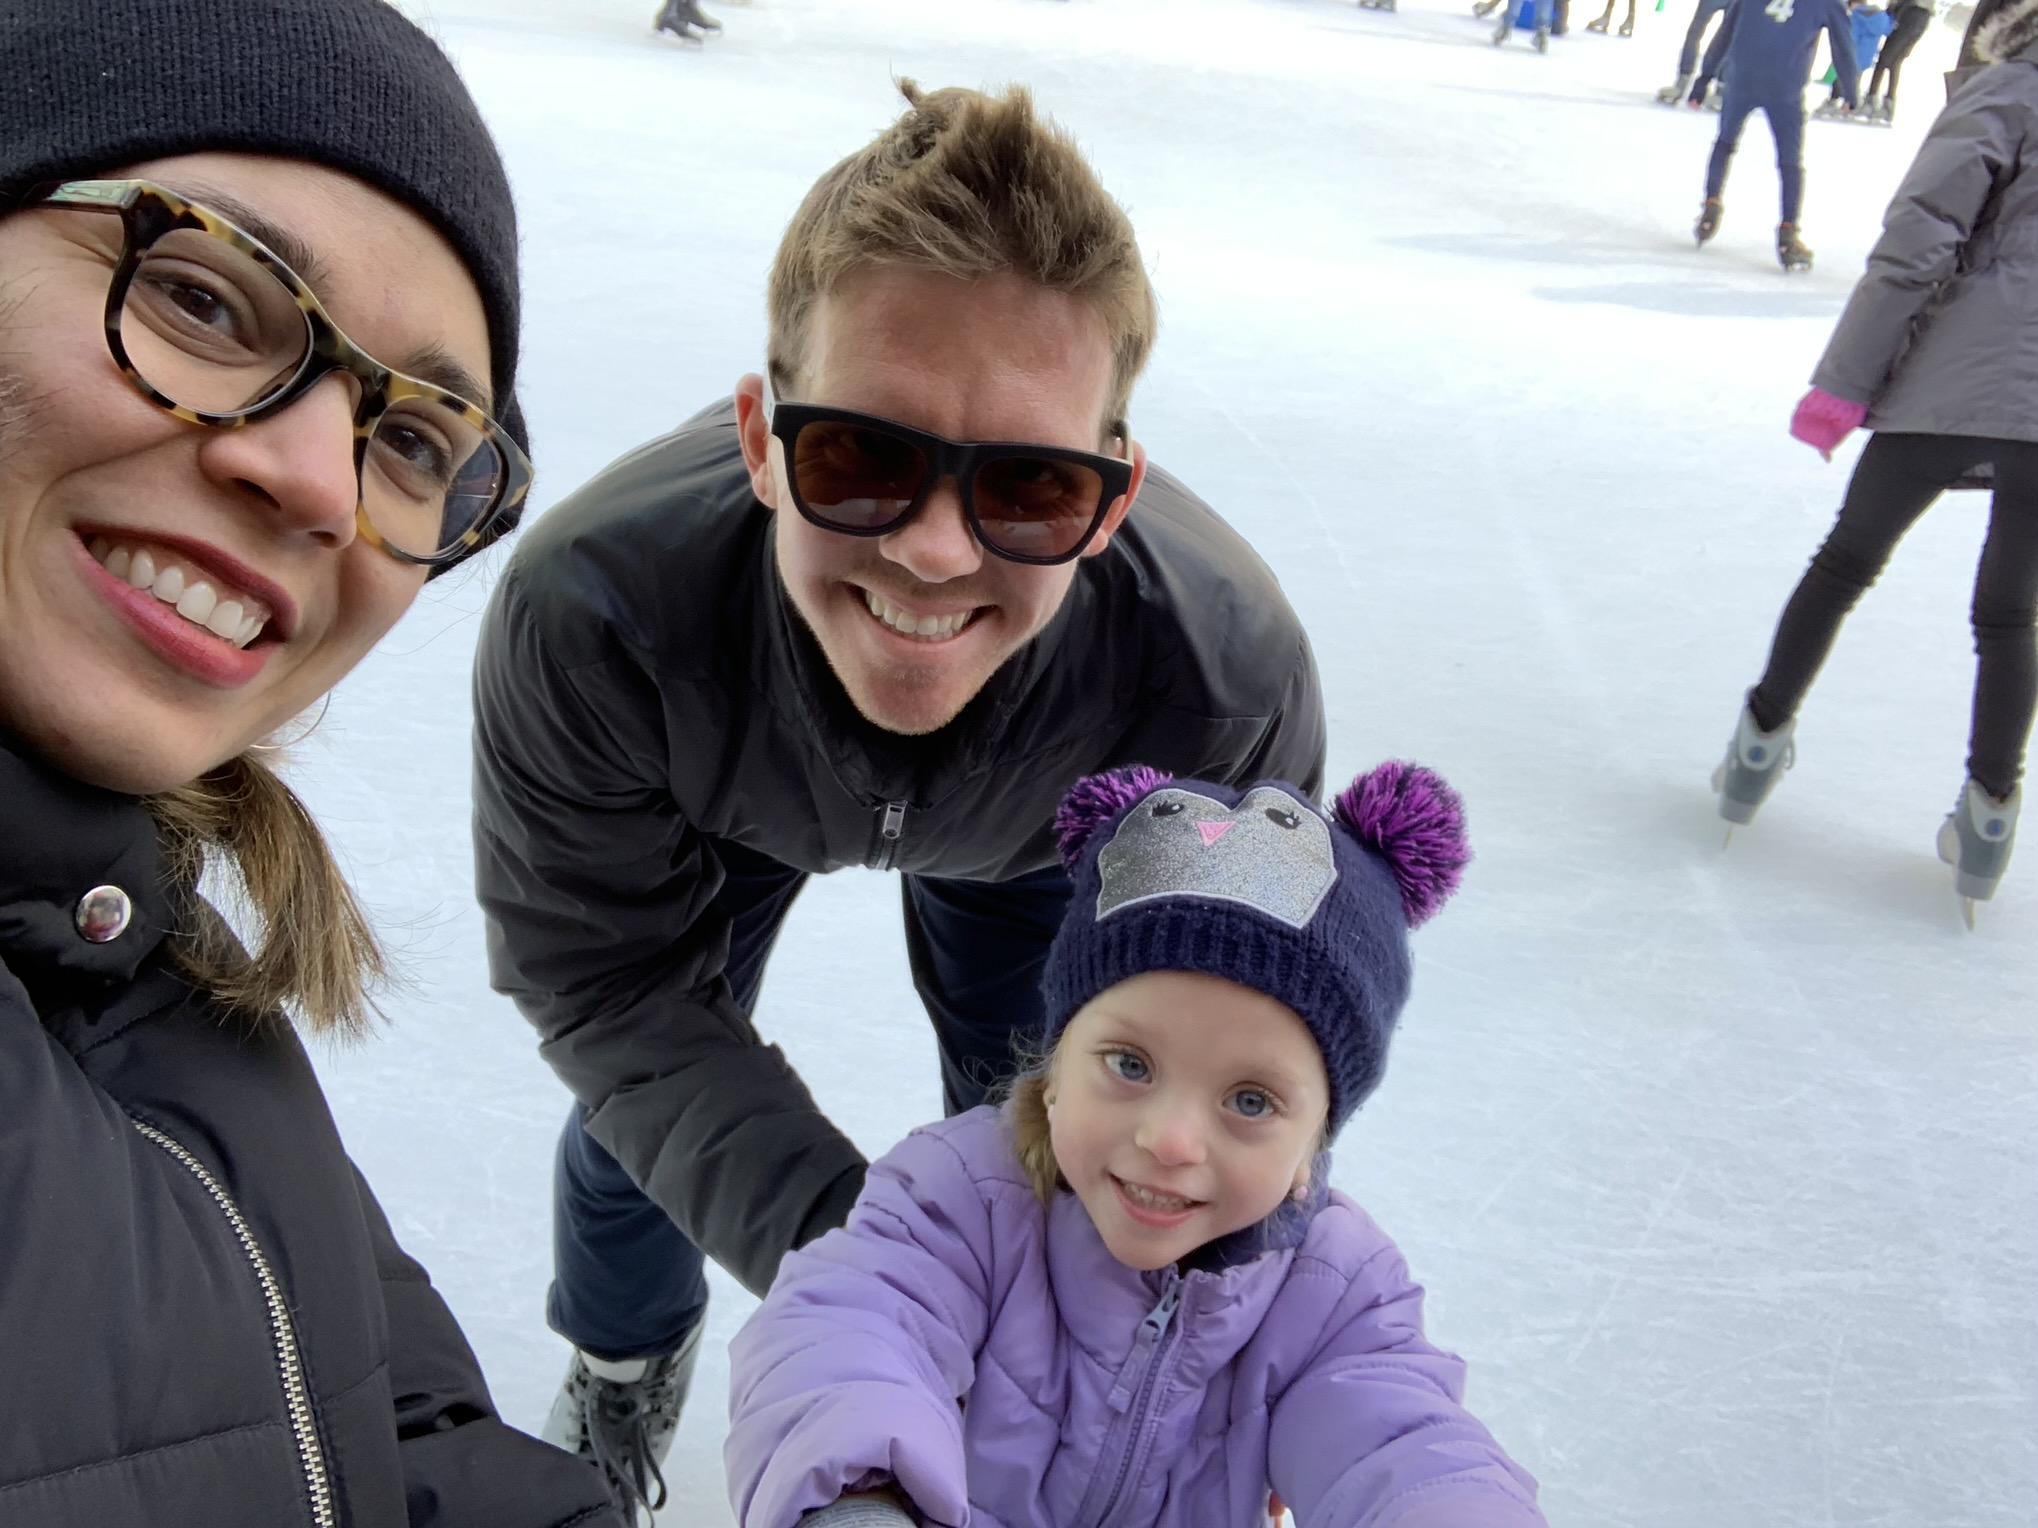 We had a lot of fun. She got very brave and needed less and less support with each loop around the rink. She only fell on her bottom once - at the very end, oh well!